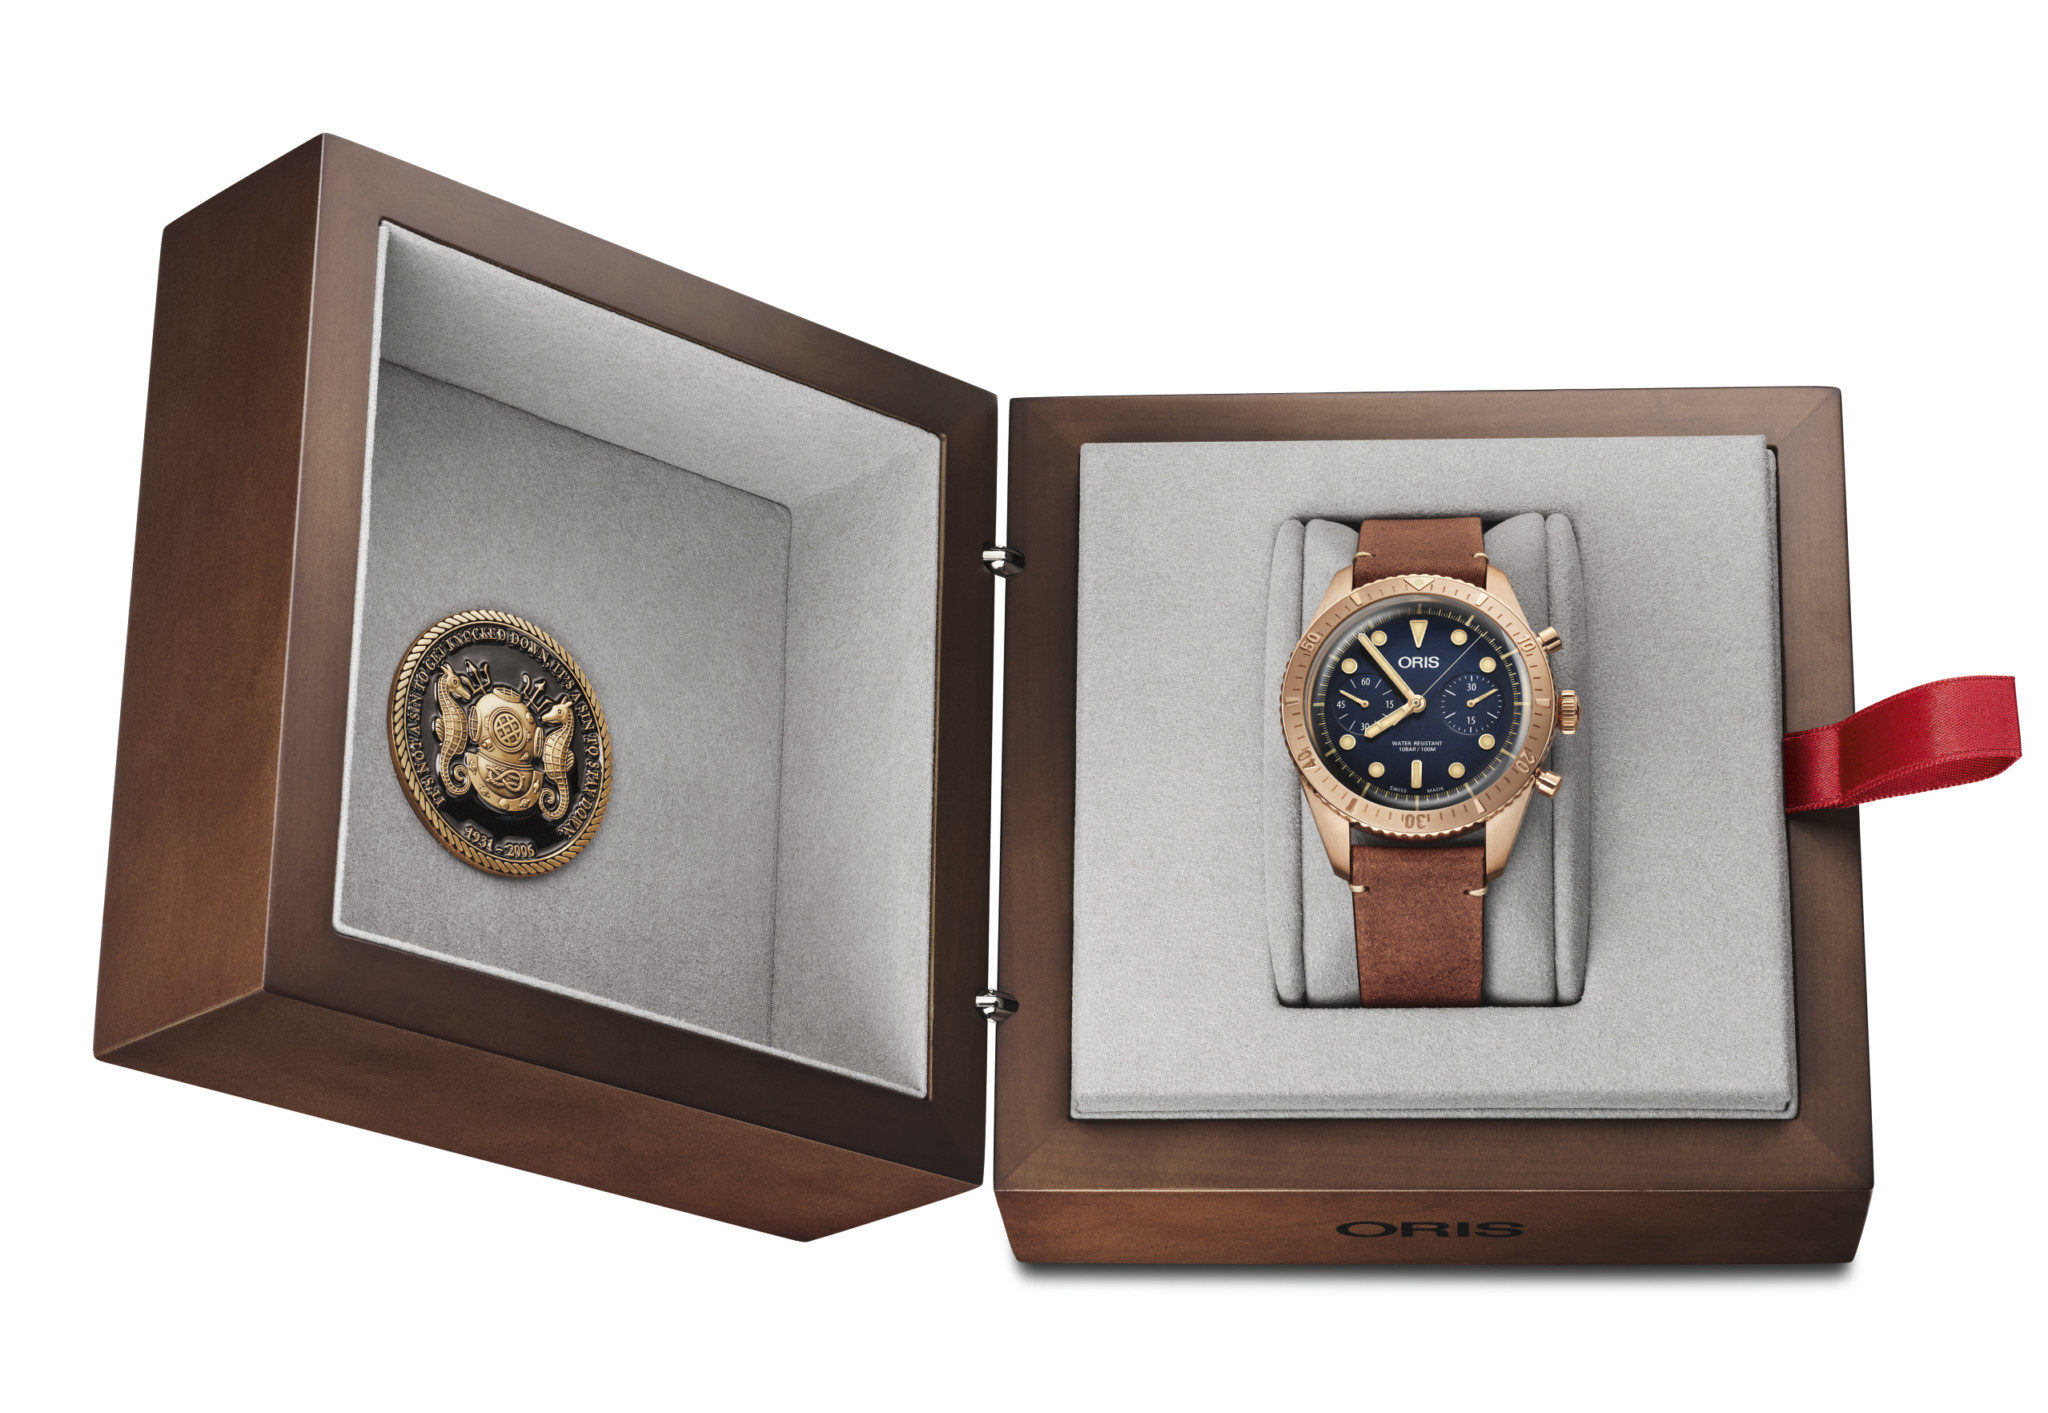 The watch comes in a wooden presentation box, complete with a coin issued by the Carl Brashear Foundation